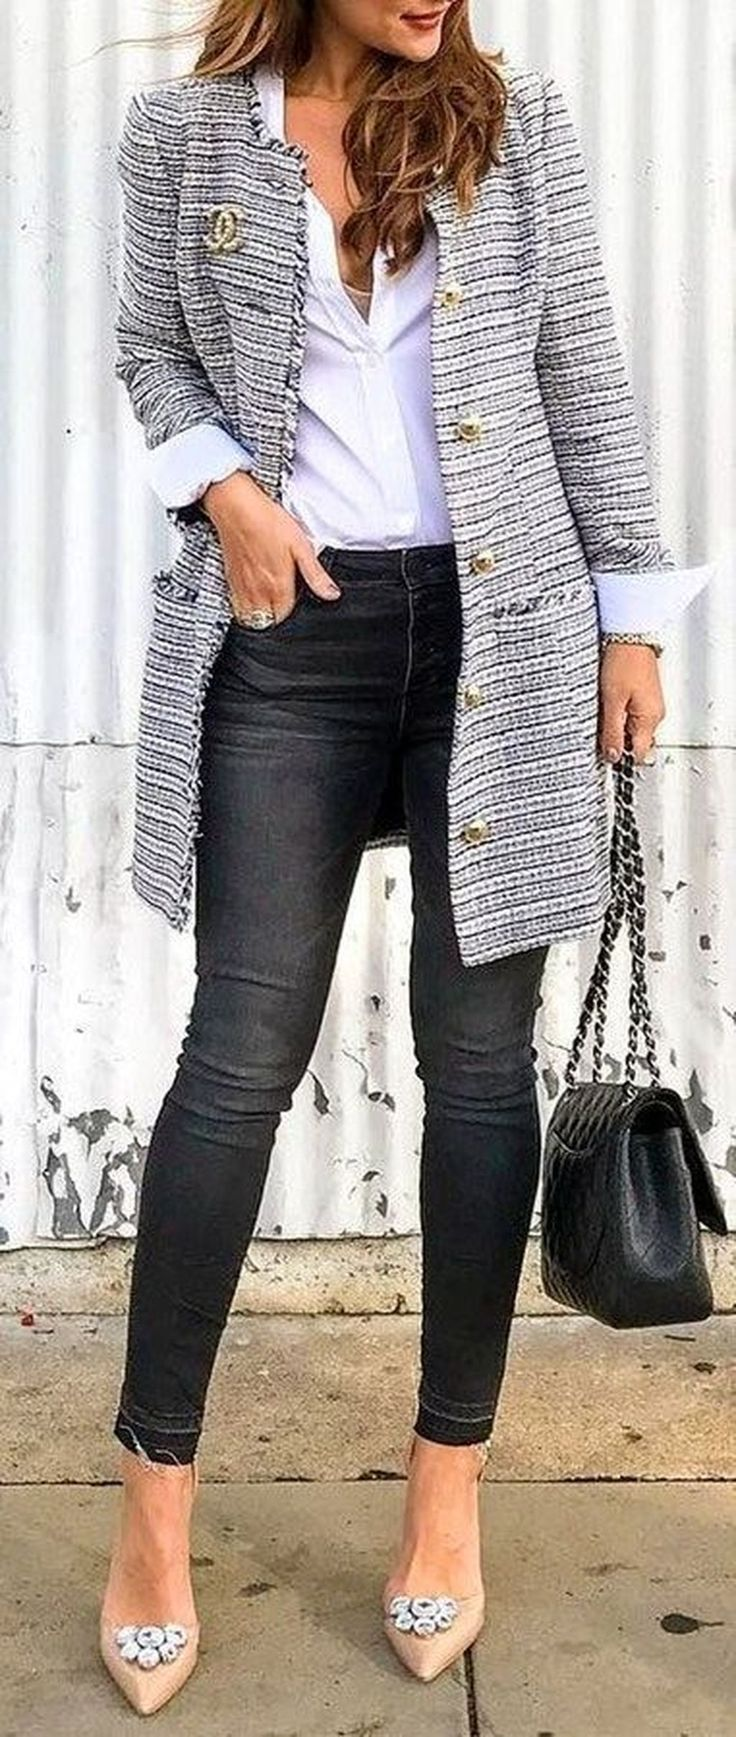 Awesome 39 Fashionable Outfit Ideas For The Winter. More at http://aksahinjewelry.com/2017/12/08/39-fashionable-outfit-ideas-winter/